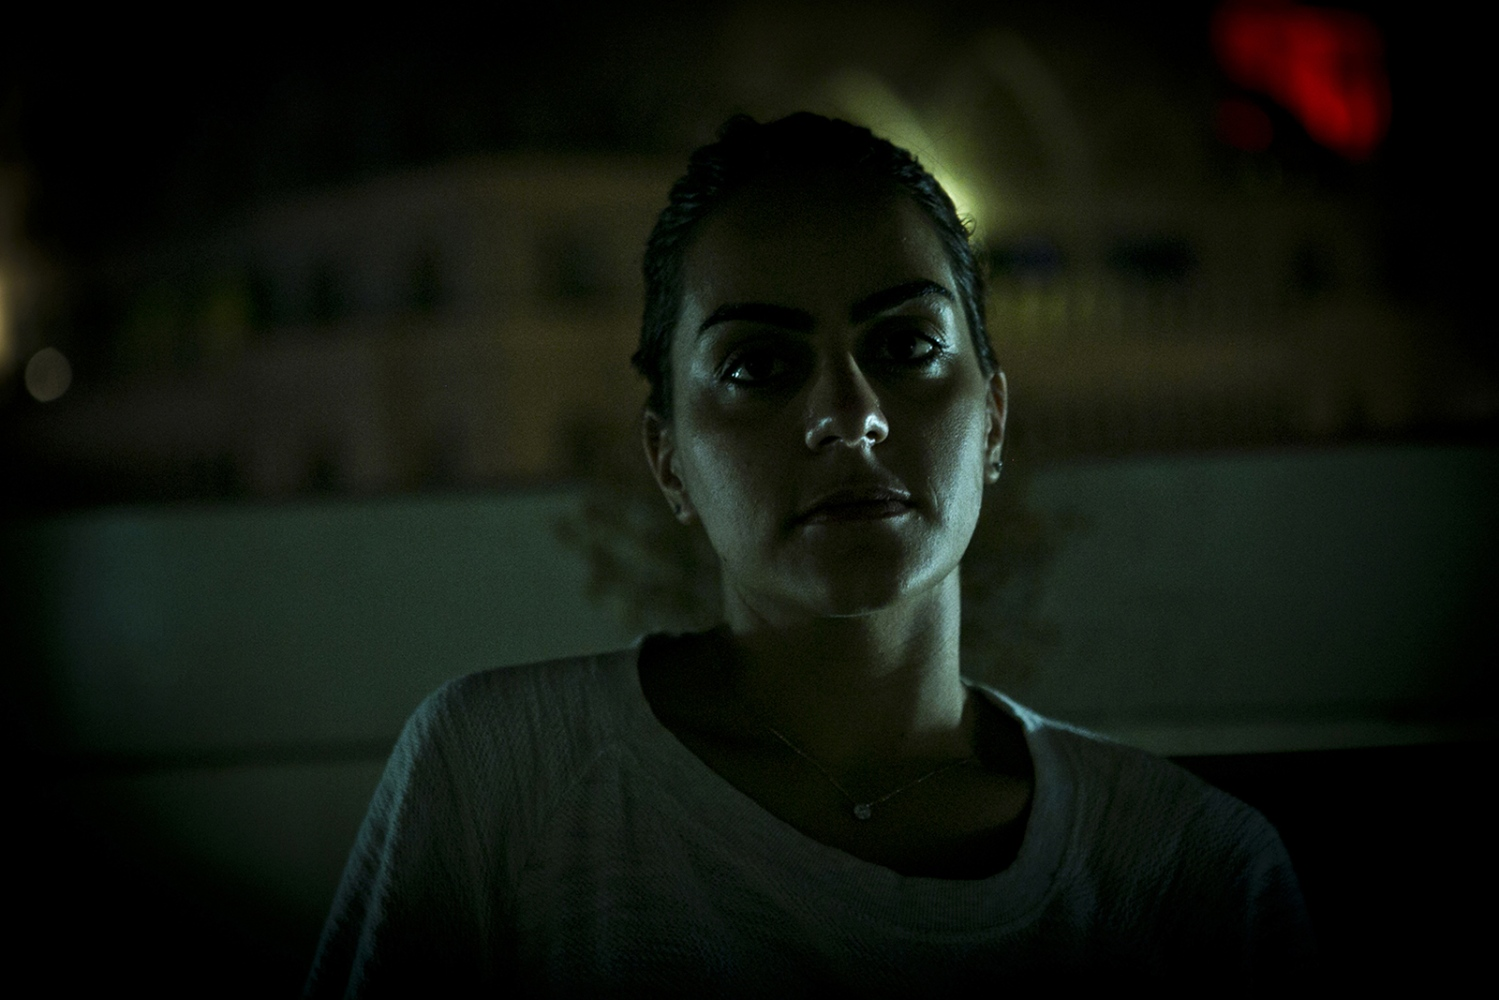 "DOHA, QATAR- 21 OCTOBER 2014 Diana relaxes on a residential rooftop after work- she often recalls memories from Syria, comparing everyday places, events ""back home"". Photo by Natalie Naccache/Getty Image Reportage/ Magnum Foundation/Prince Claus Fund/ AFAC"